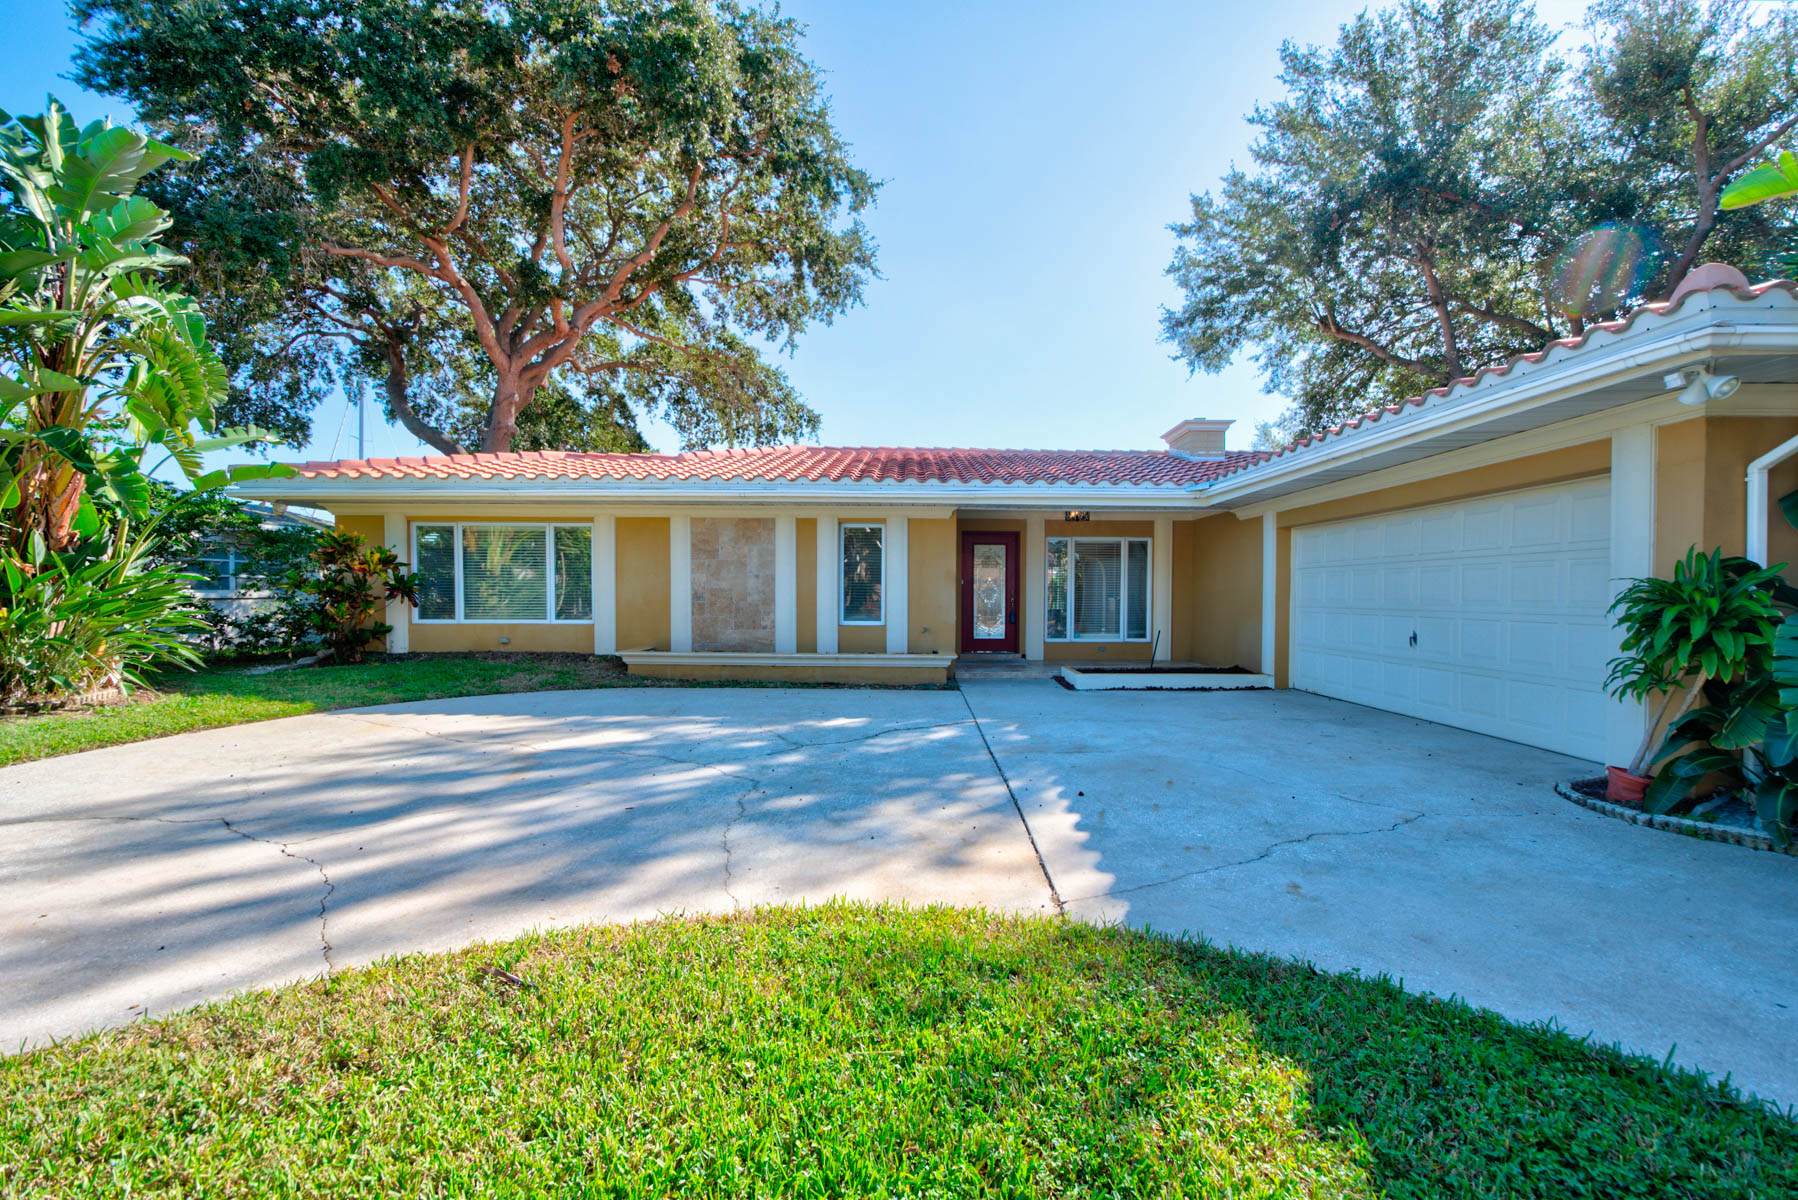 SOLD FOR $700,000:  125 LEEWARD ISLAND, CLEARWATER BEACH FL 33767